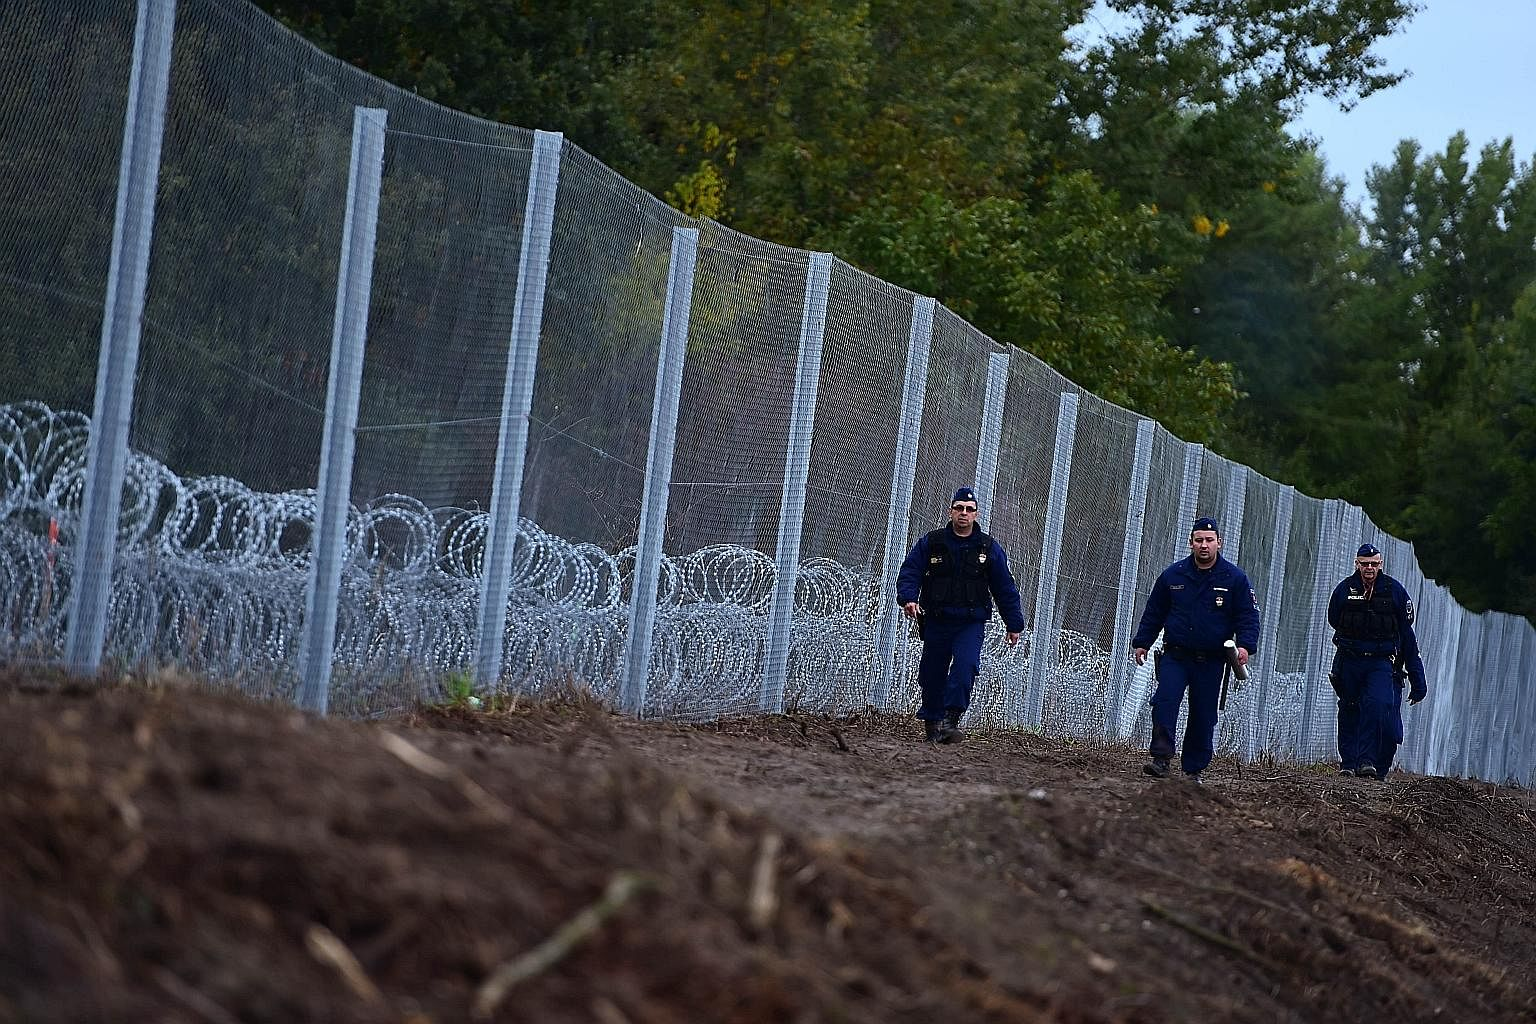 Police officers patrolling a newly erected fence at the Hungarian- Croatian border near Zakany. As governments erect barriers and reinstate border controls, the refugee crisis is disrupting flows of people and gumming up trade.